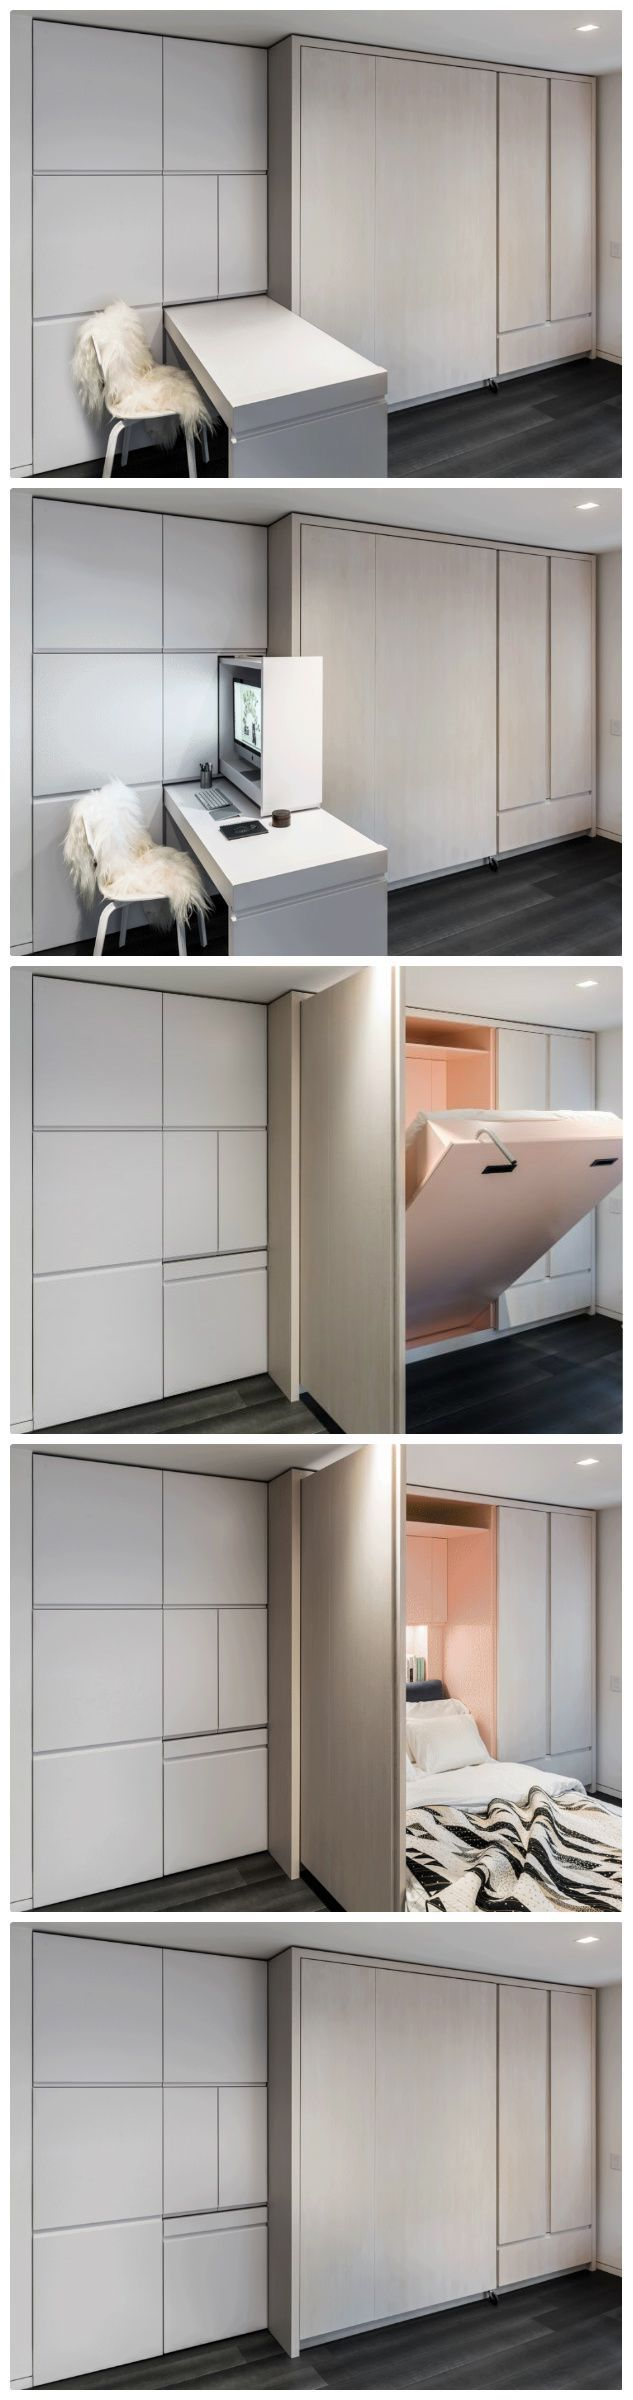 Compact Living Ideas best 10+ compact living ideas on pinterest | compact kitchen